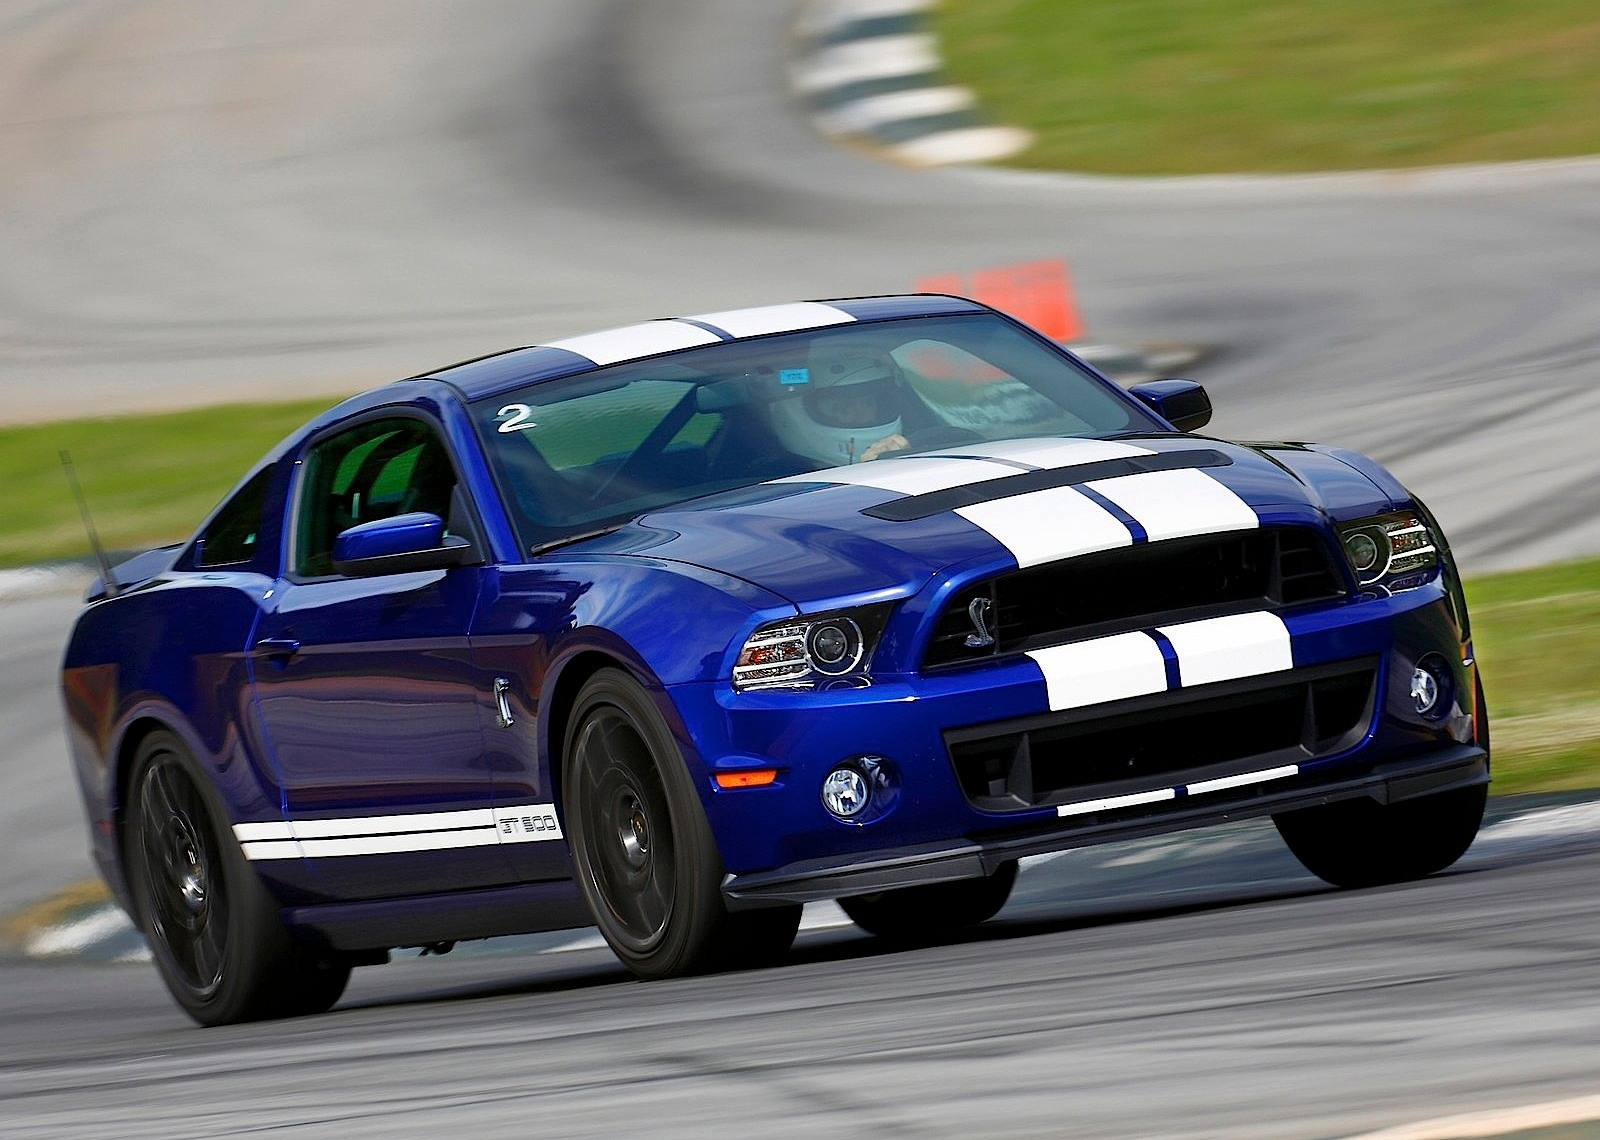 2012 Ford Shelby Gt500 #2